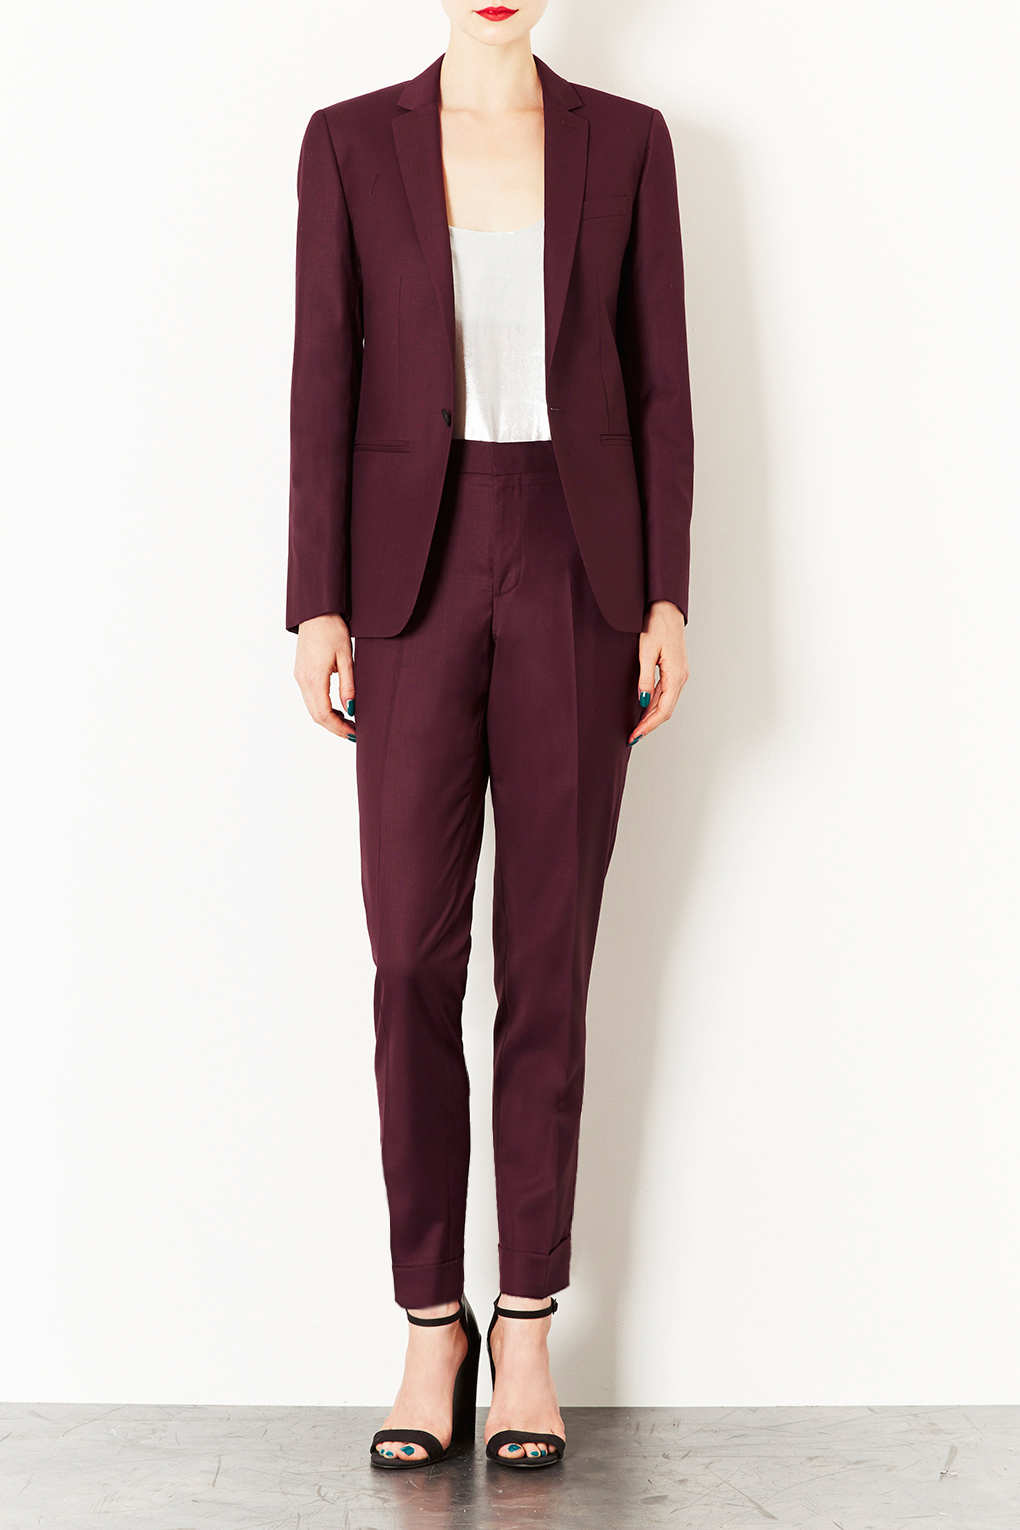 Lyst Topshop Modern Tailoring Tailored Suit Blazer In Red